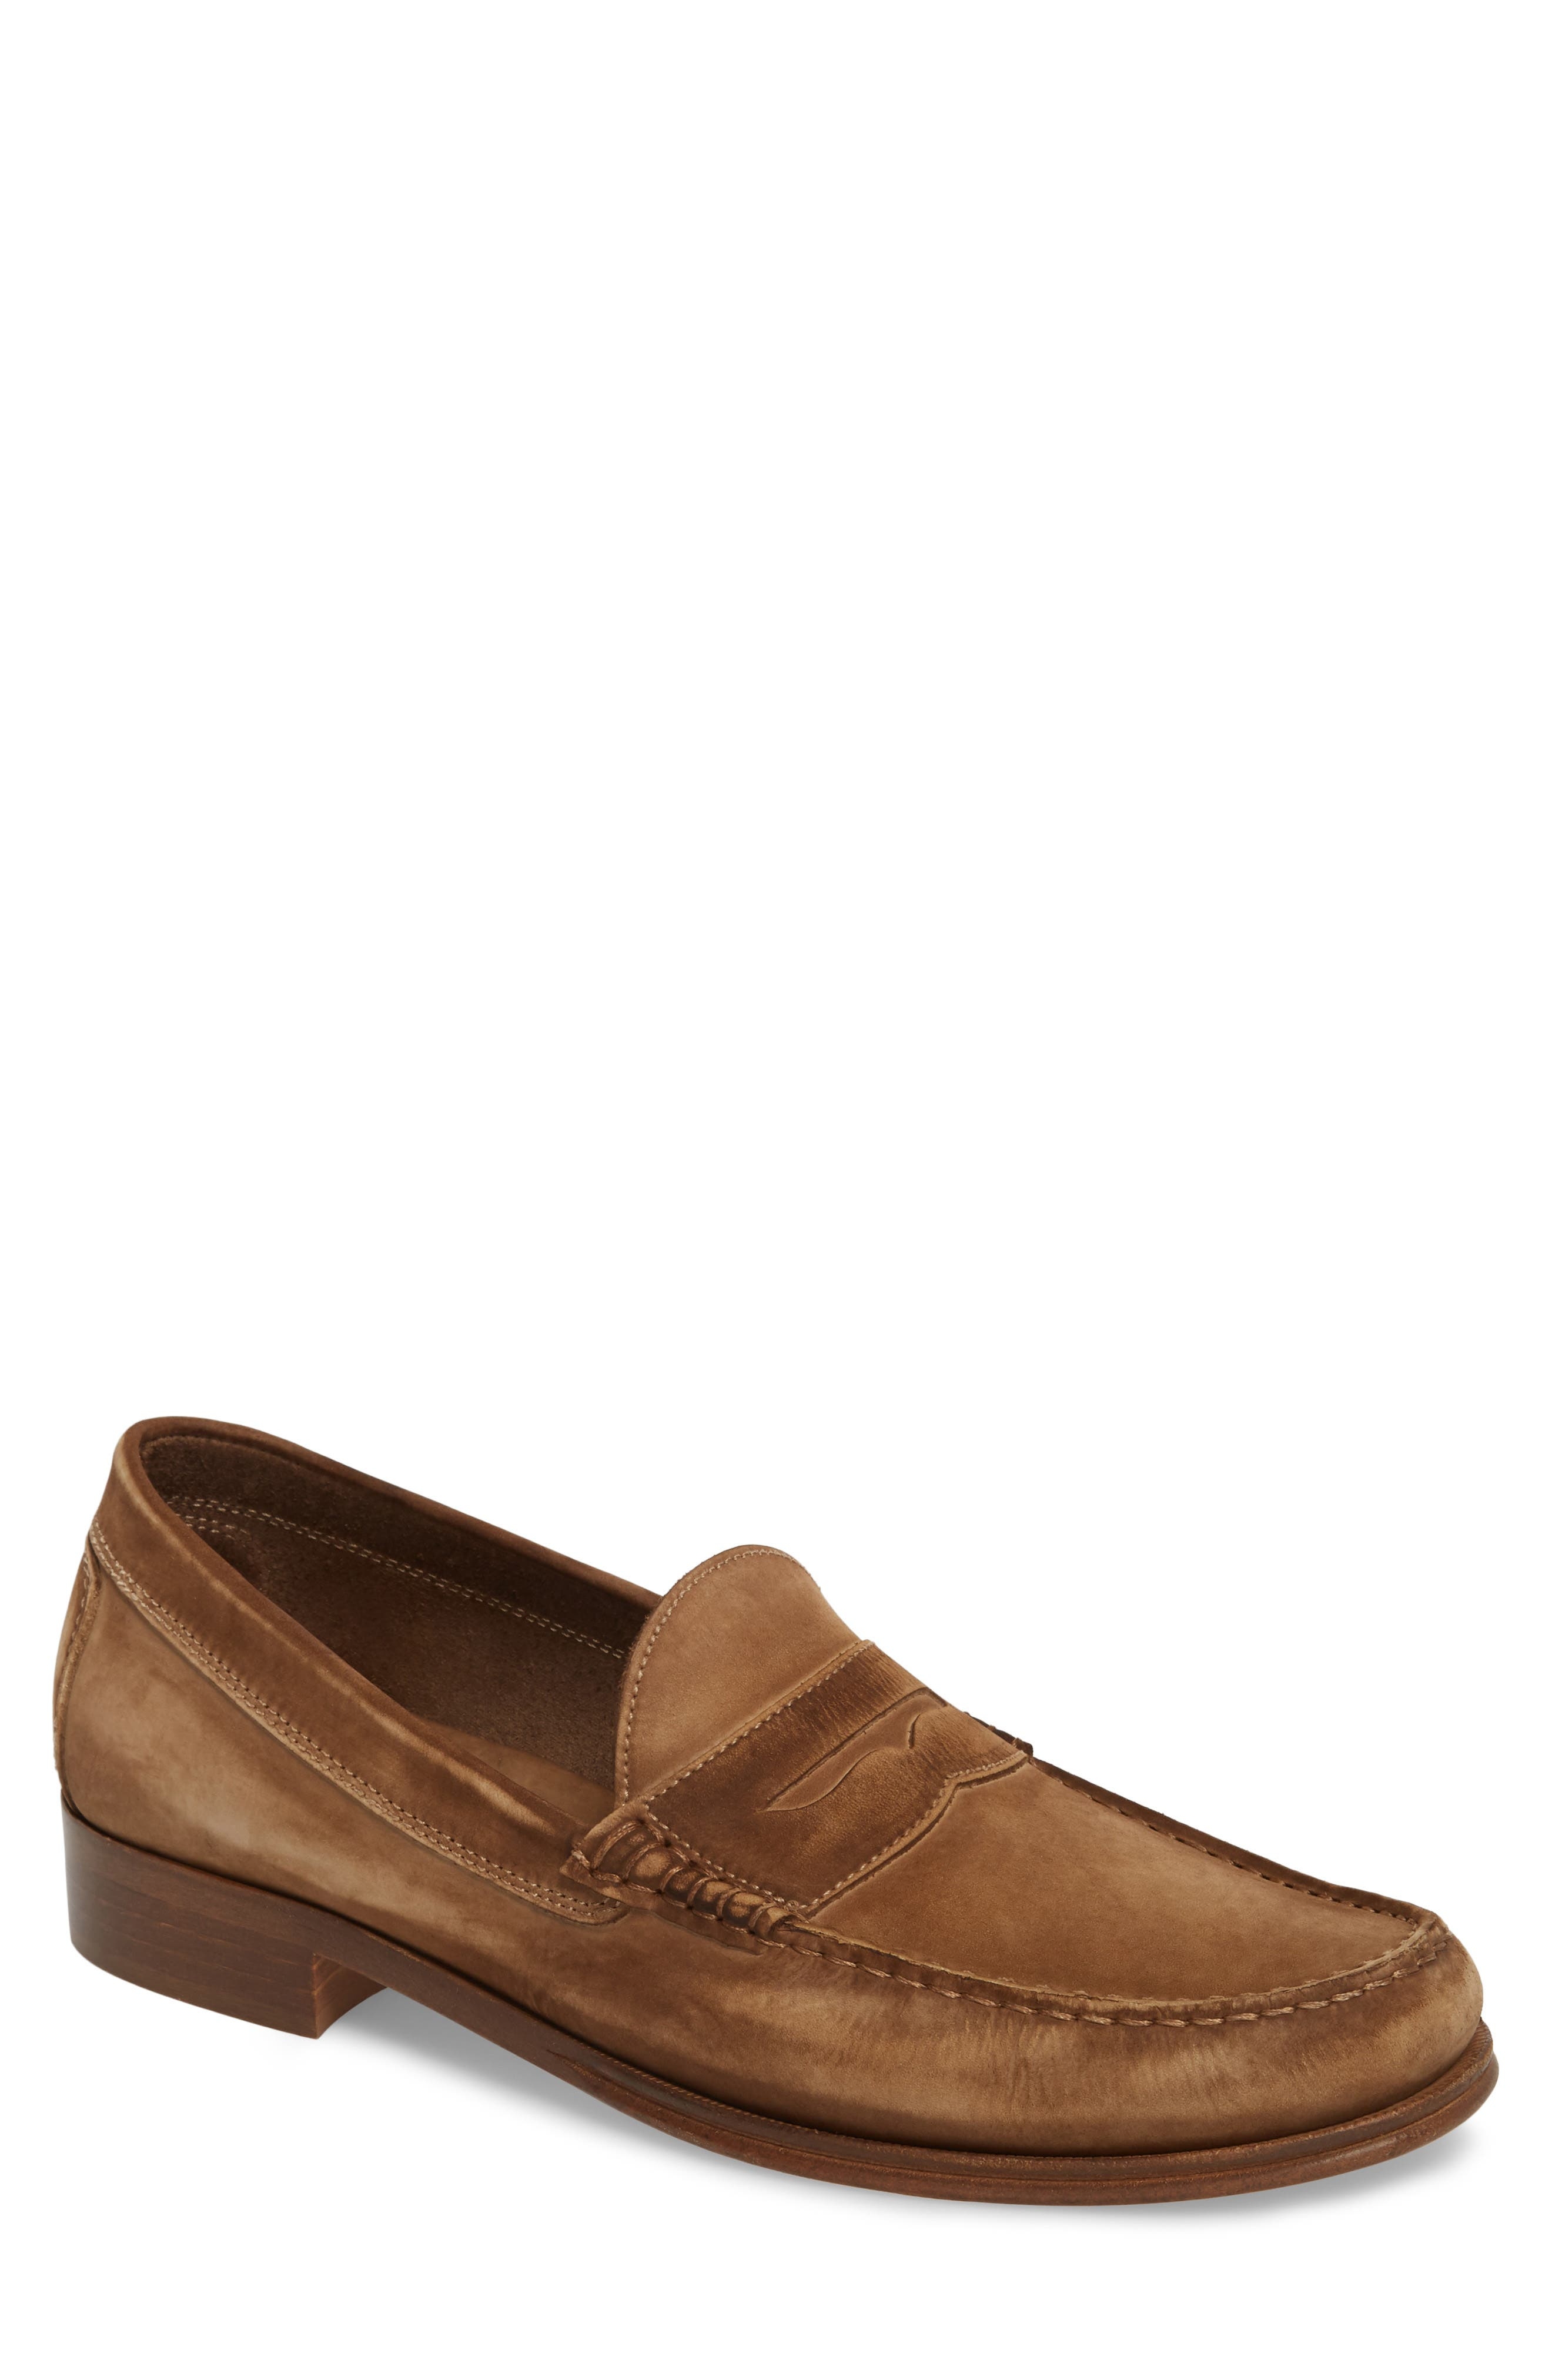 Nicola Penny Loafer,                         Main,                         color, Chocolate Nubuck Leather